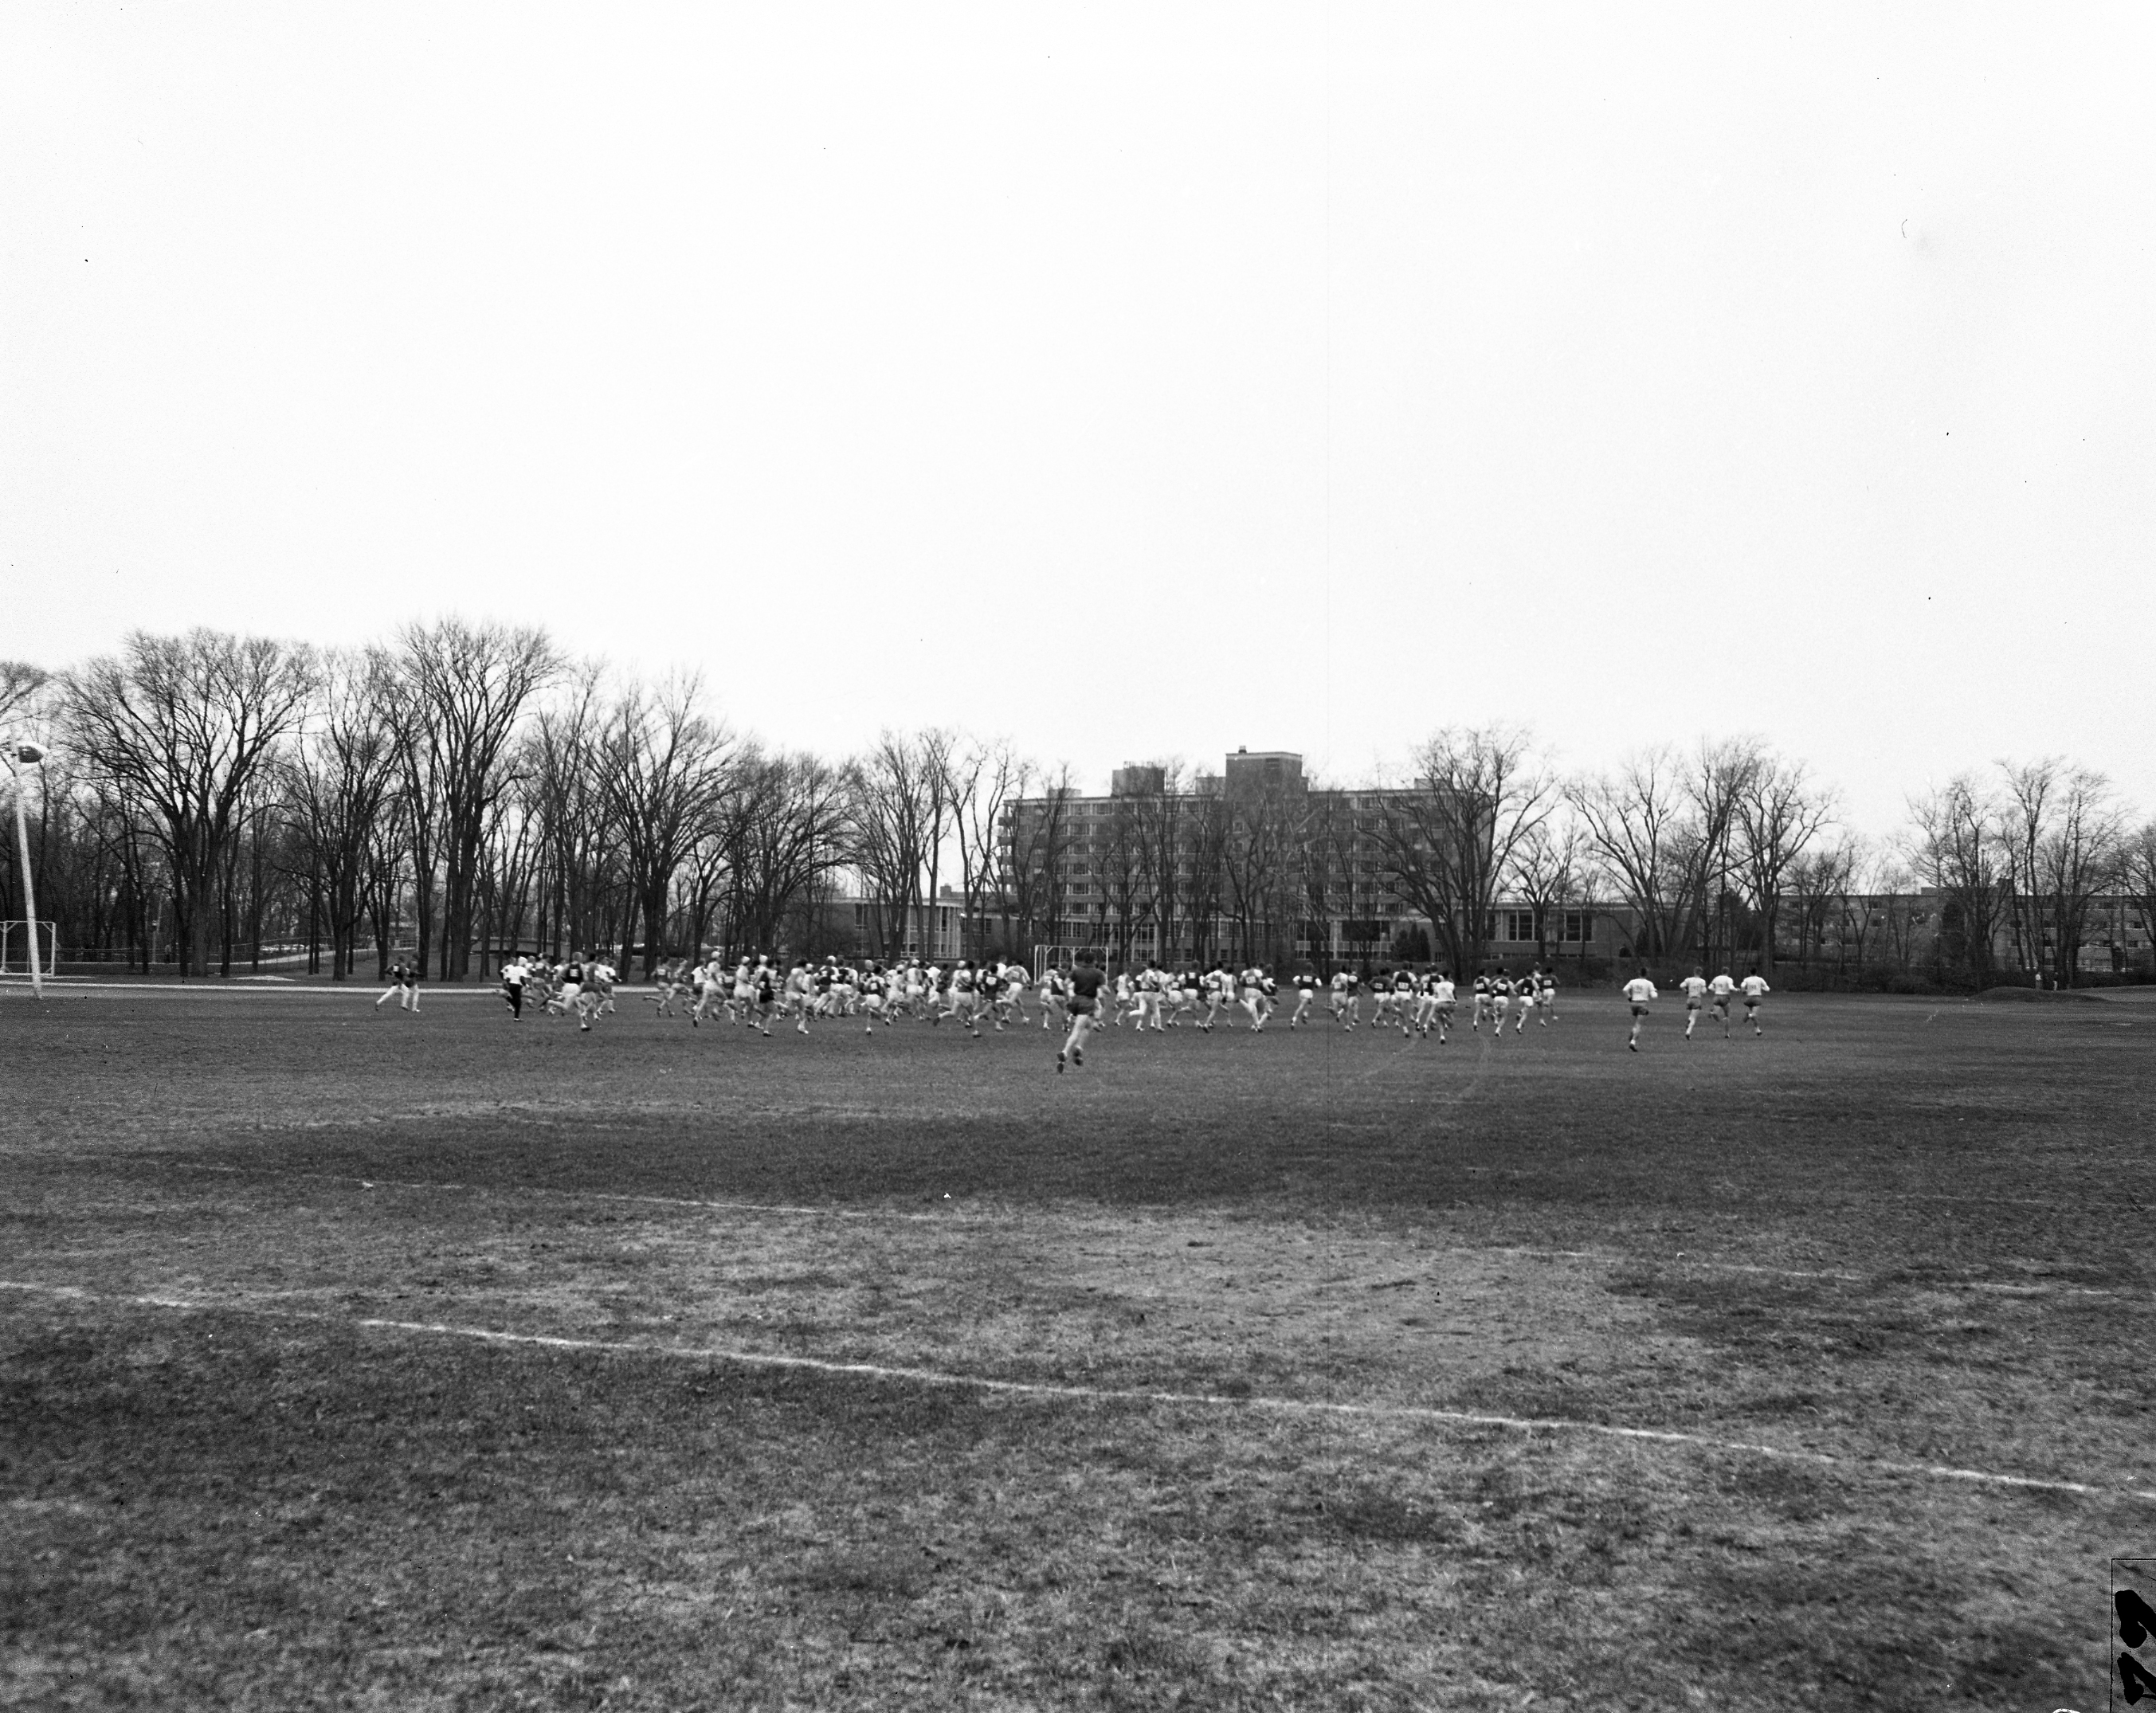 Cross Country team on field, 1957